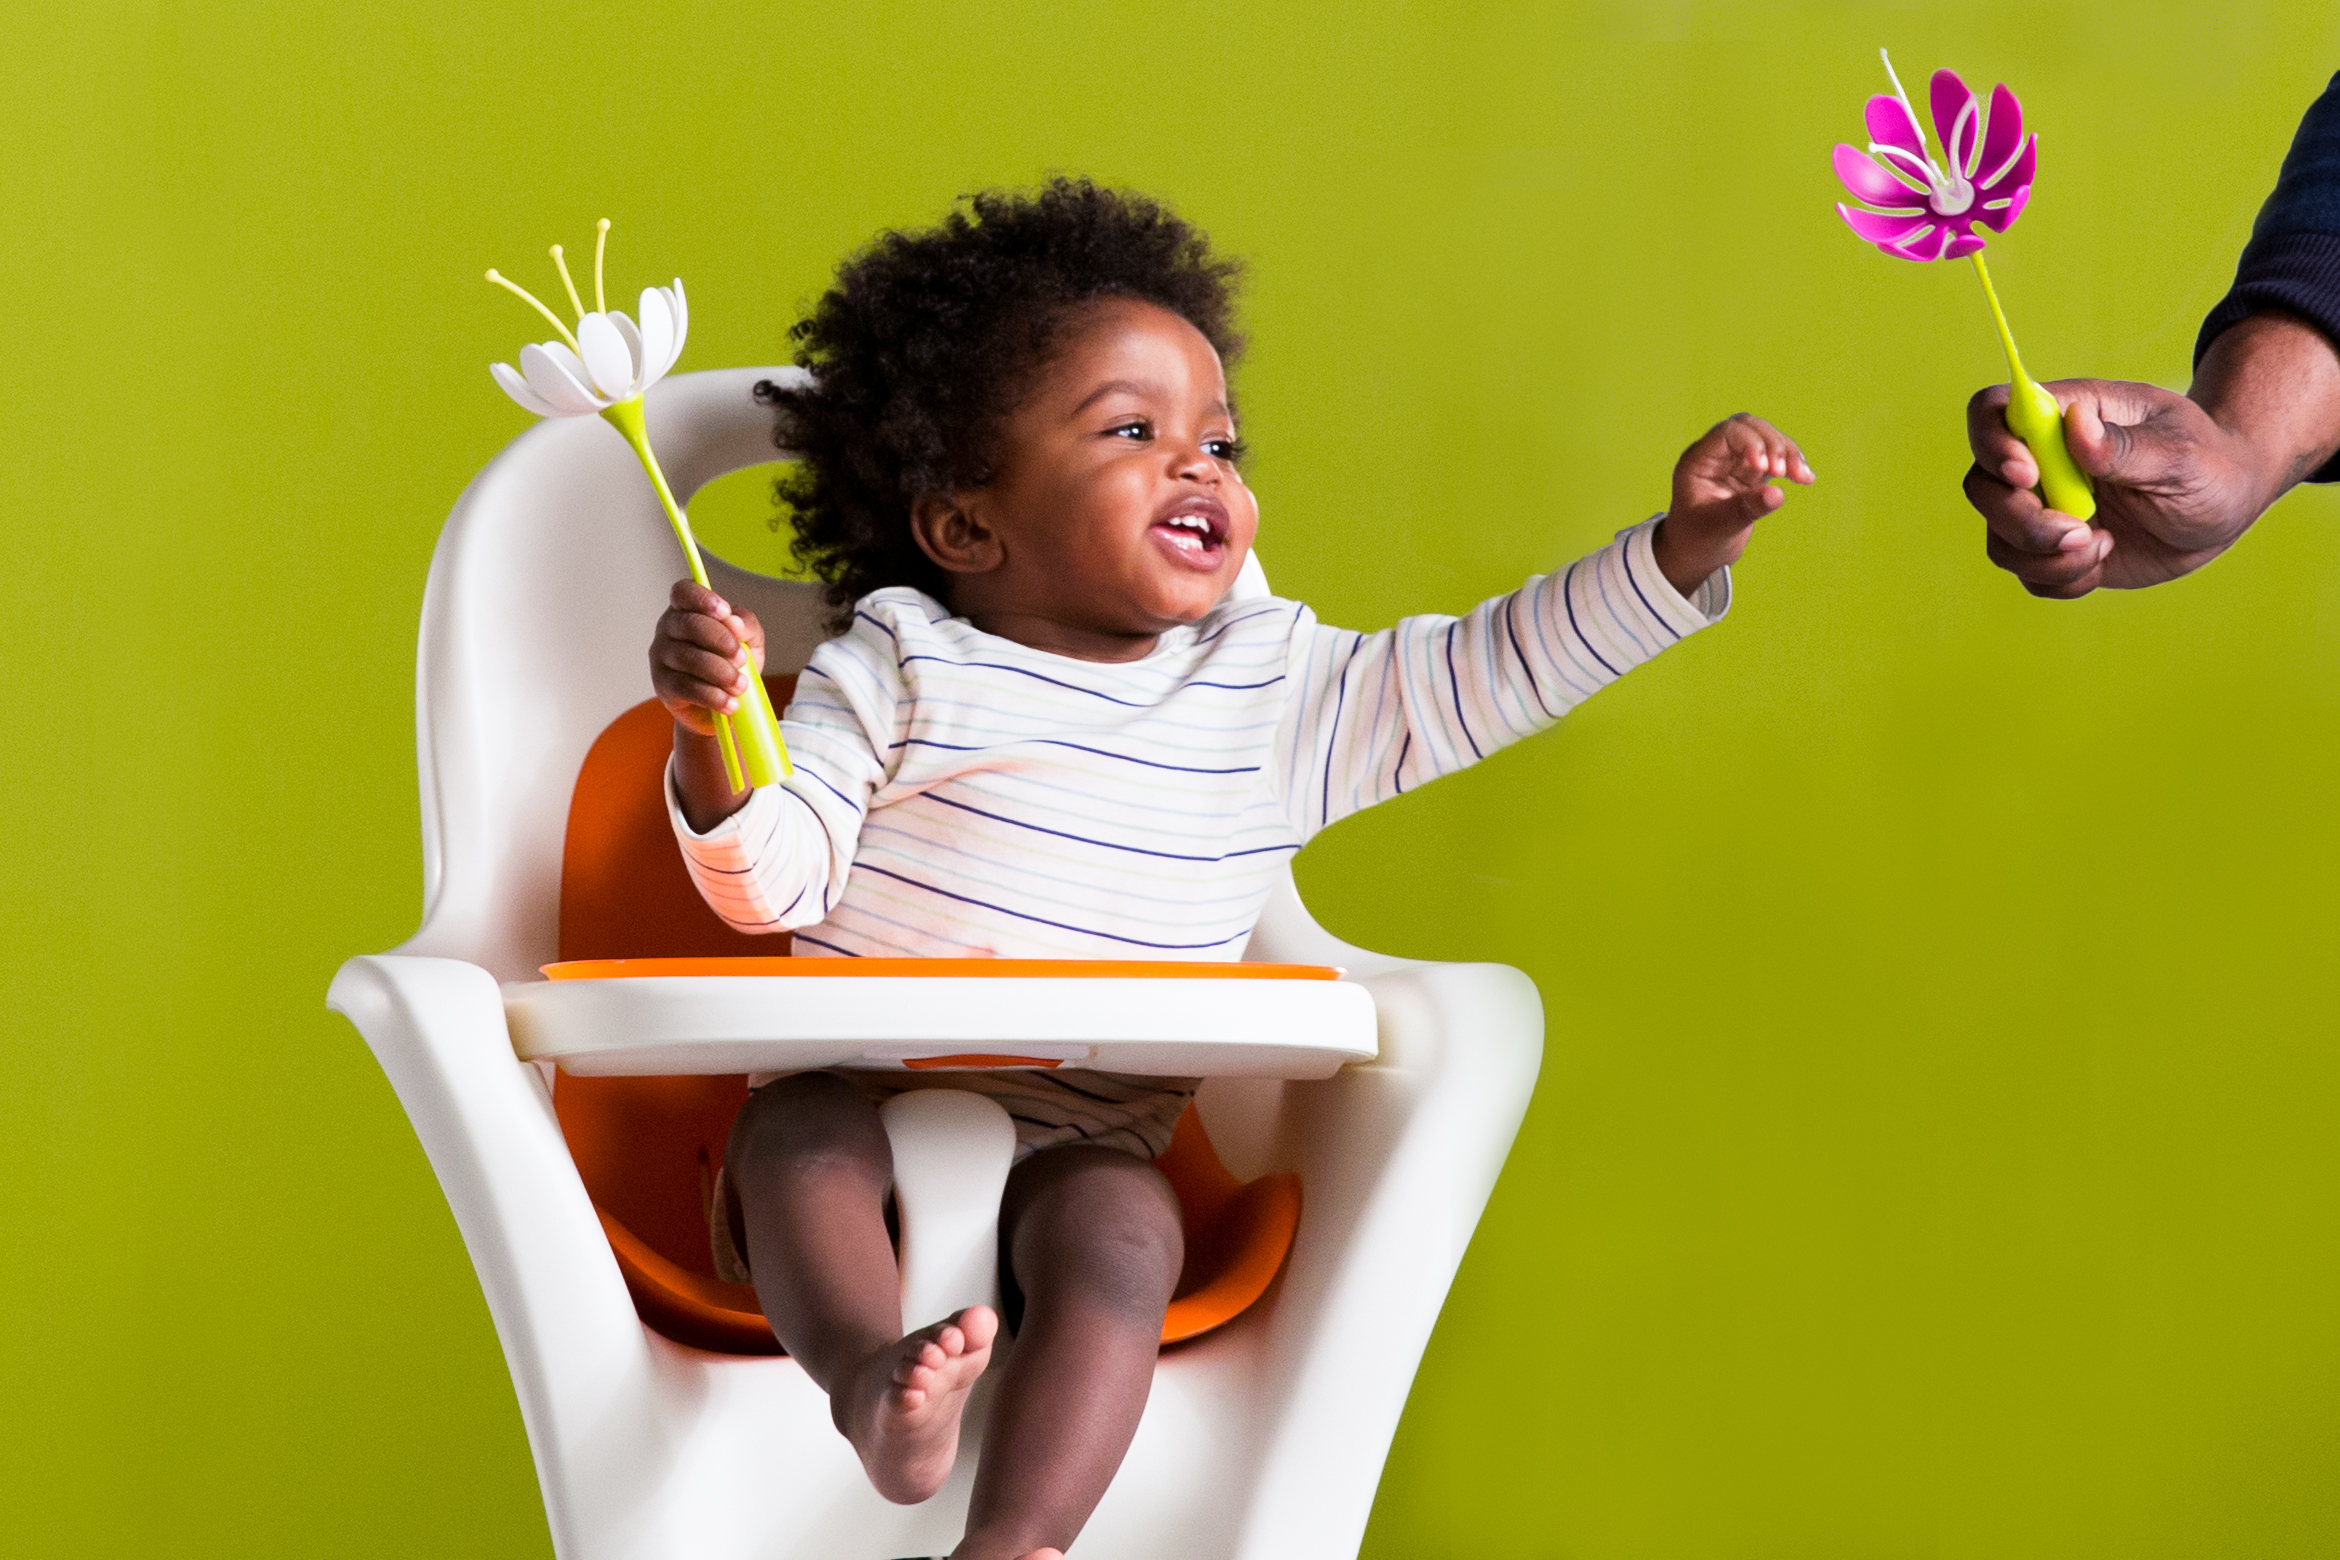 Hello! We're Stork, - a video production company specialized in all things children.